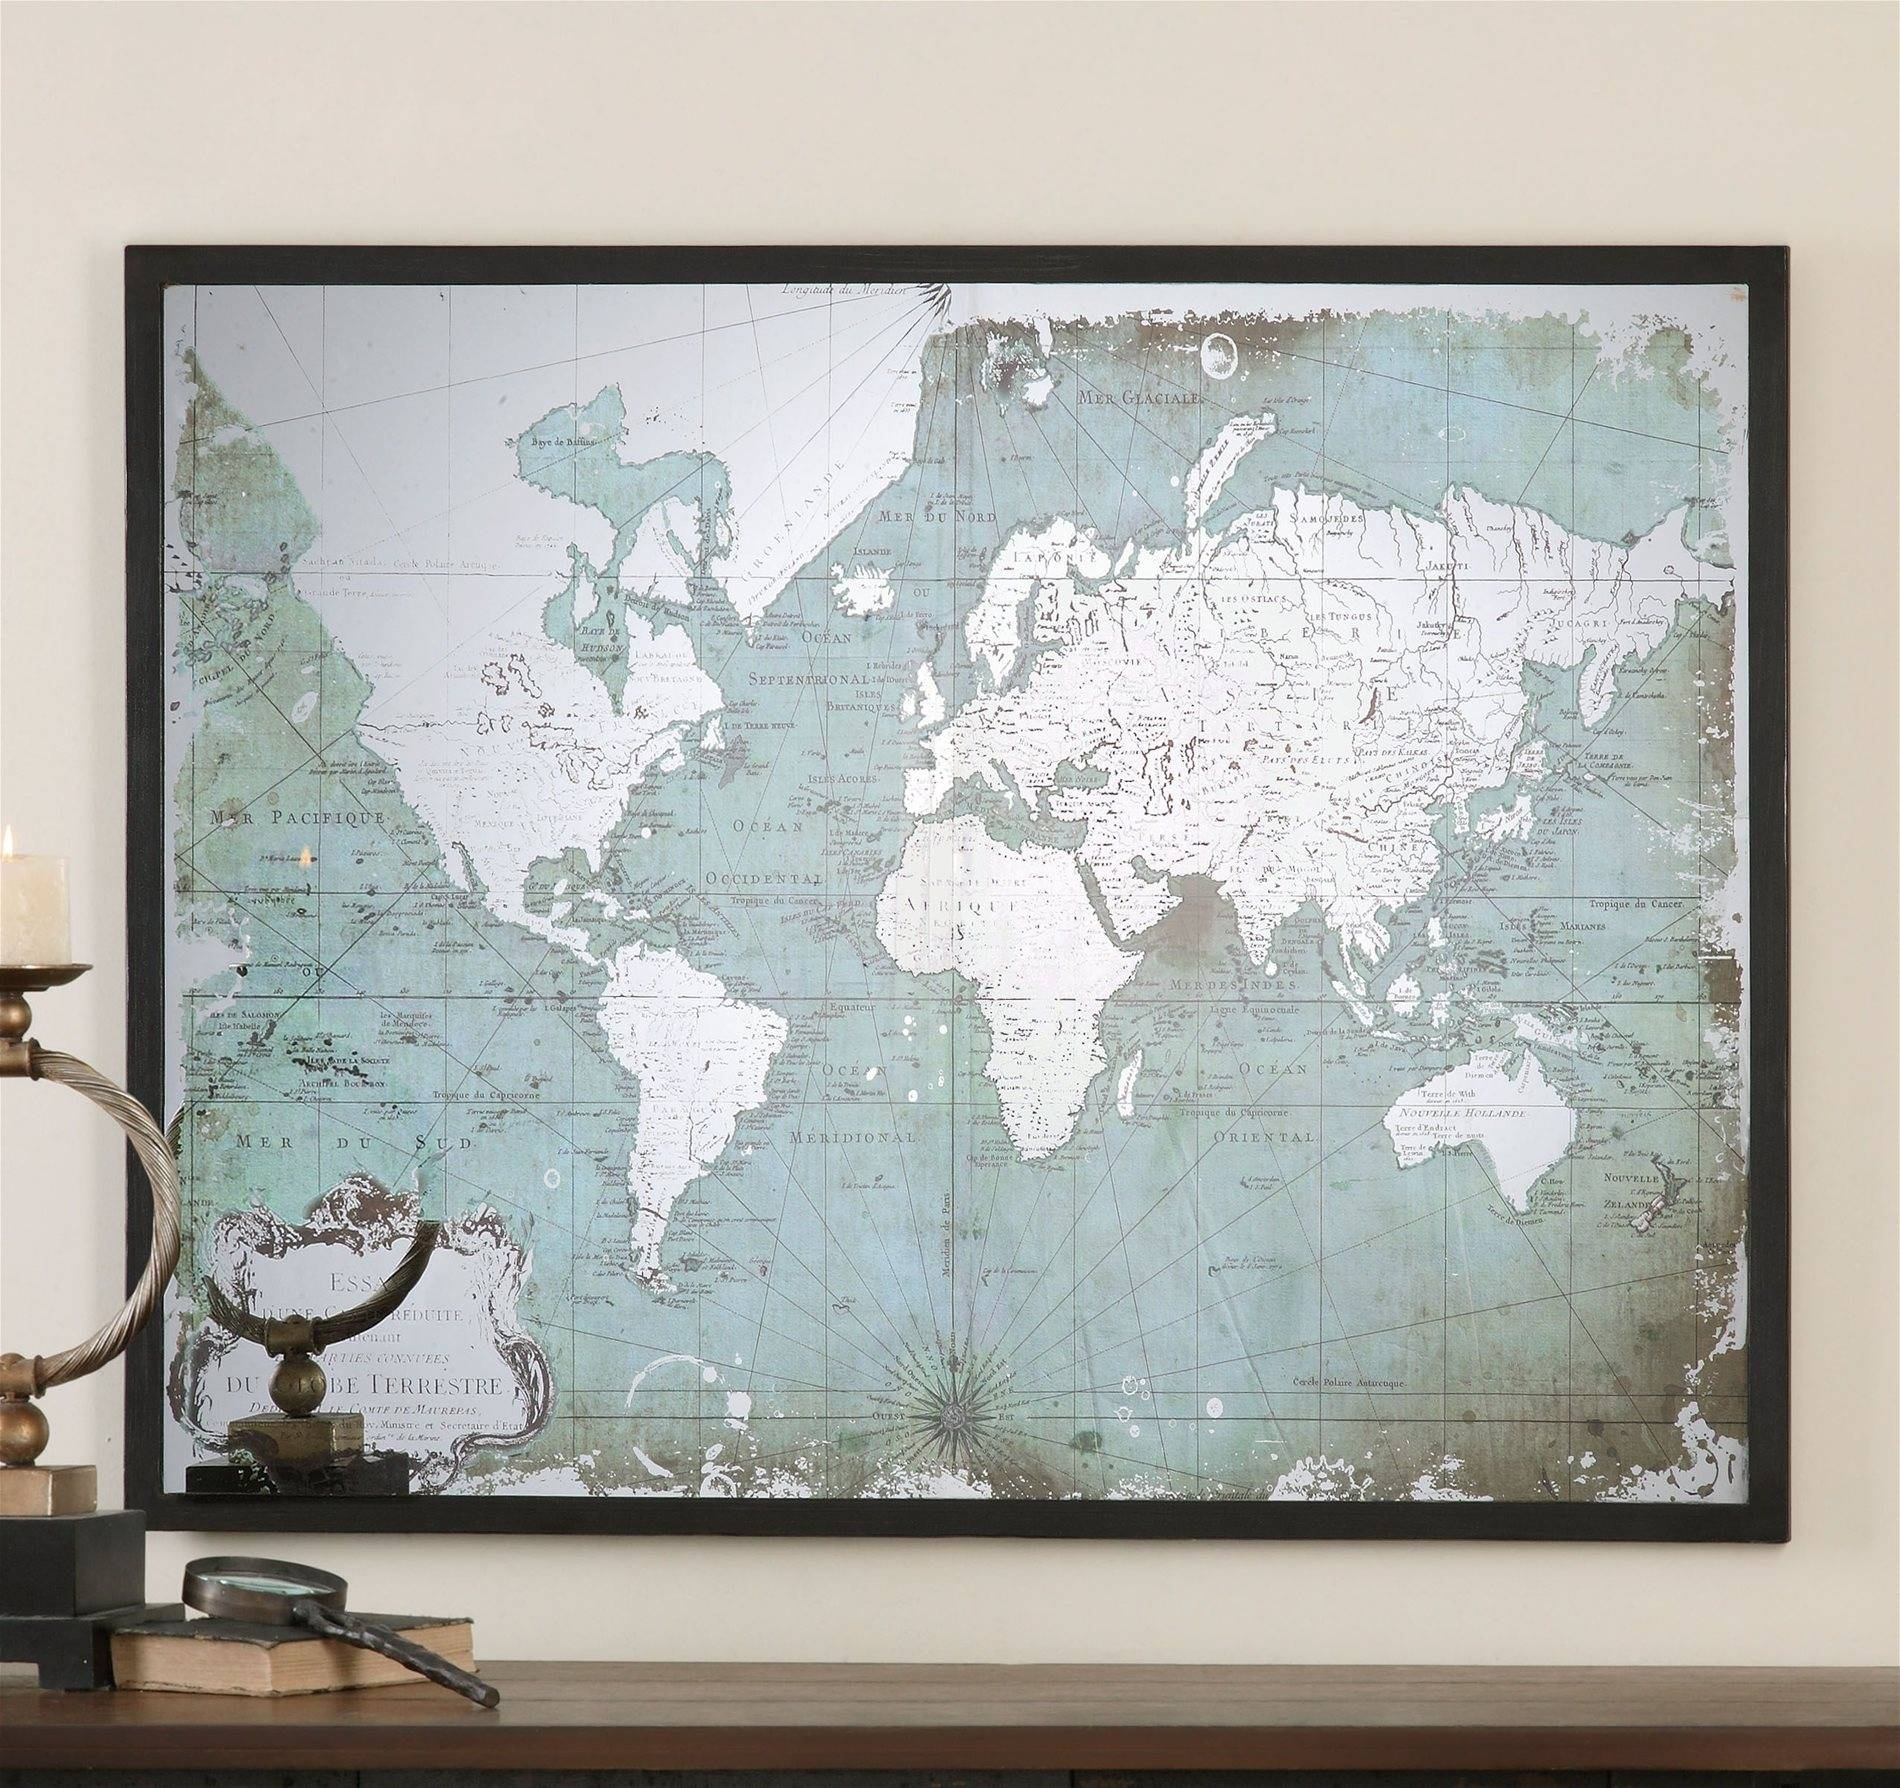 Family World Map Wall Decal Art | Design Idea And Decorations In 2018 Framed Map Wall Art (View 5 of 20)